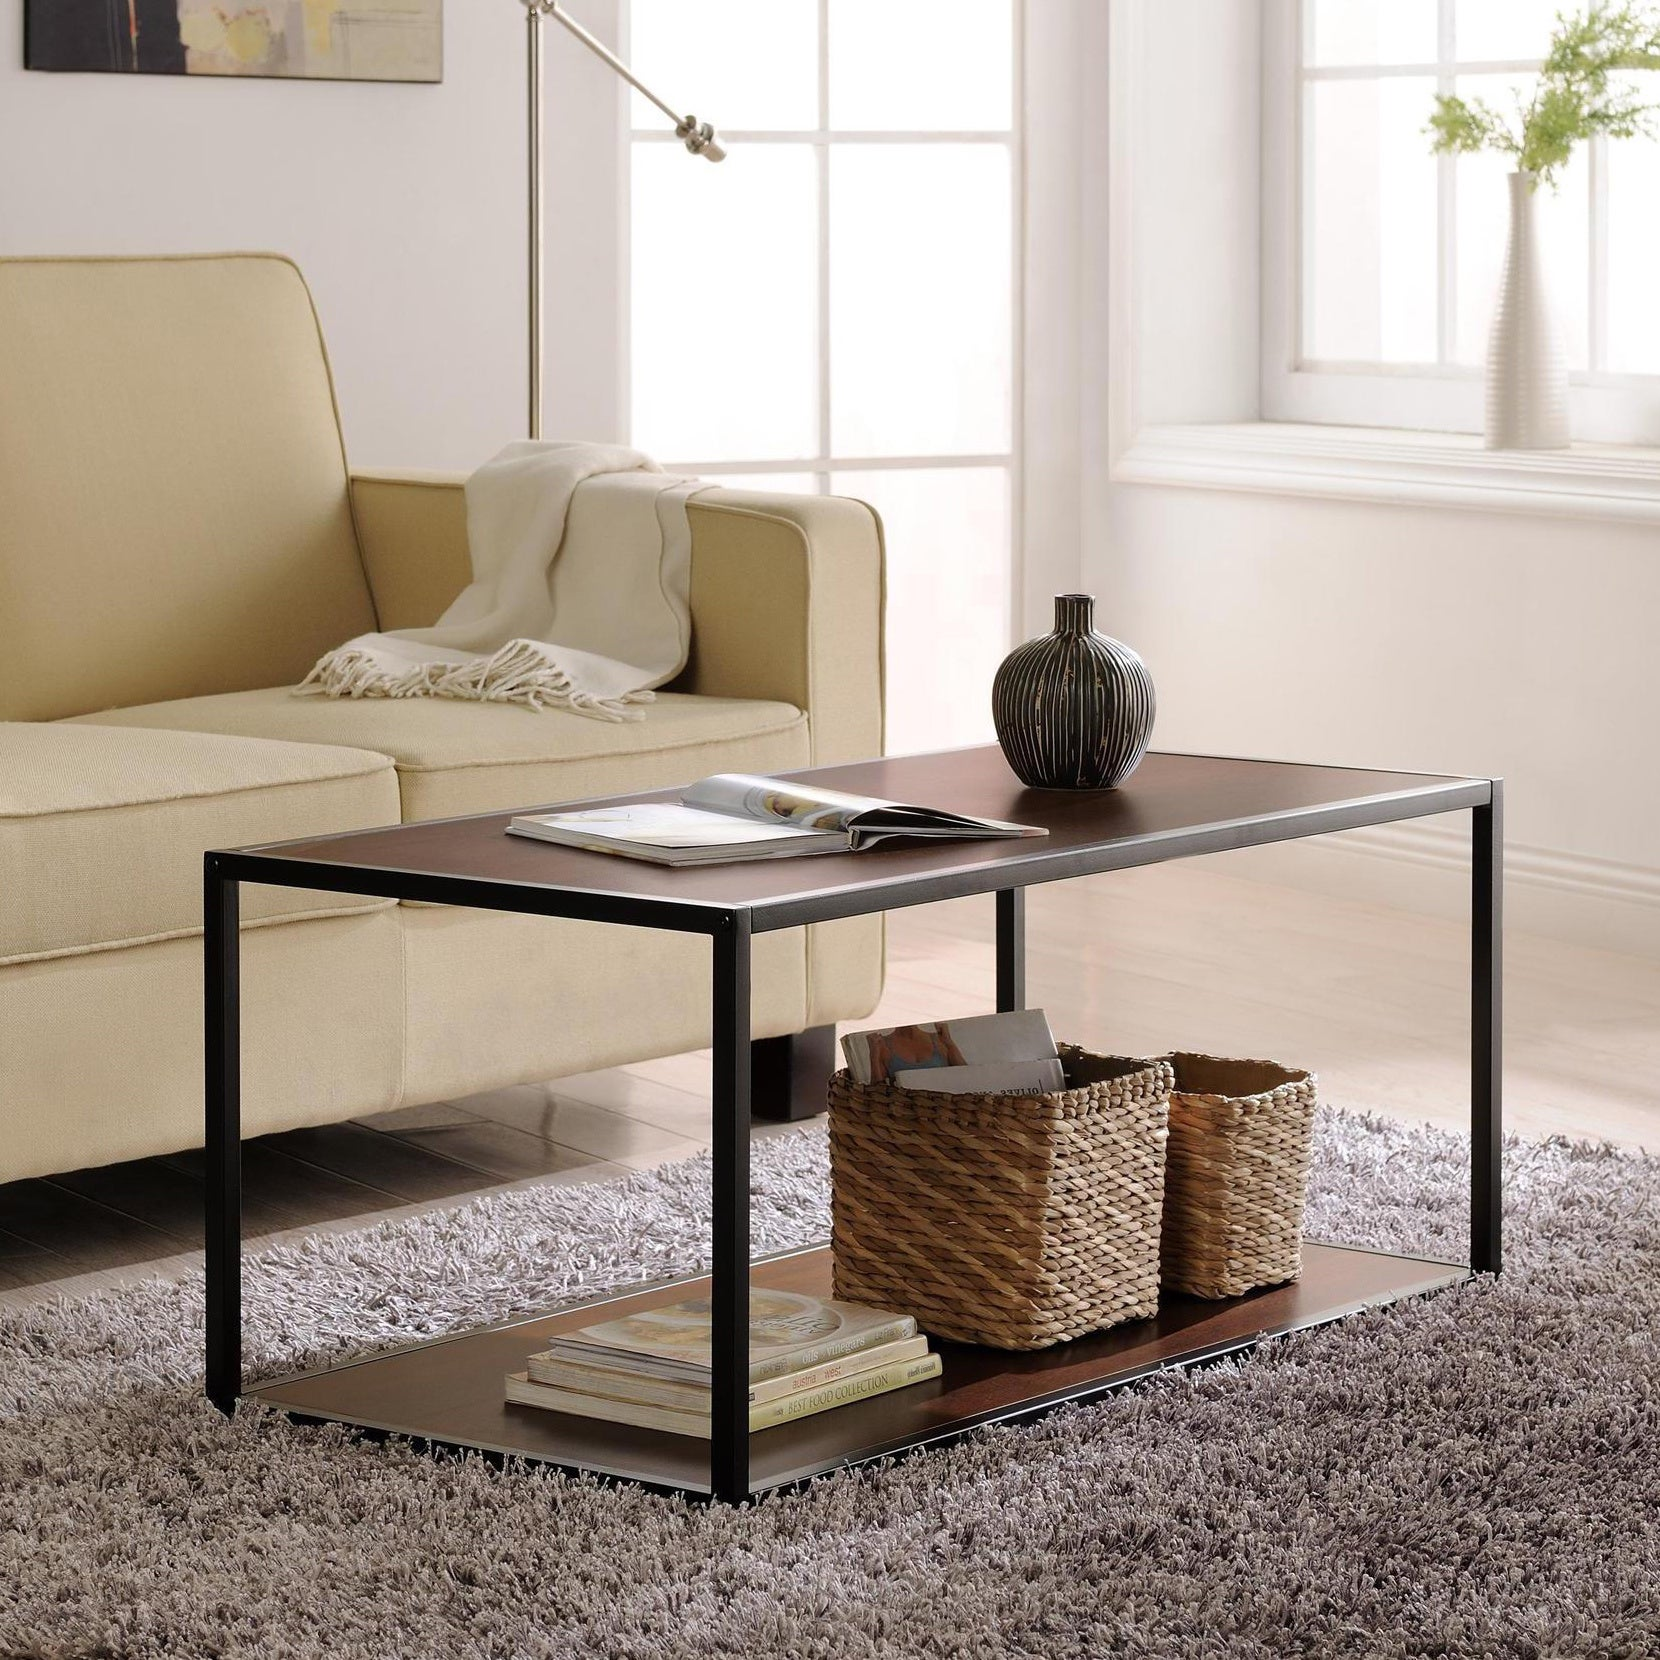 Shop Carbon Loft Daulton Metal Frame Coffee Table   On Sale   Free Shipping  Today   Overstock.com   17765054